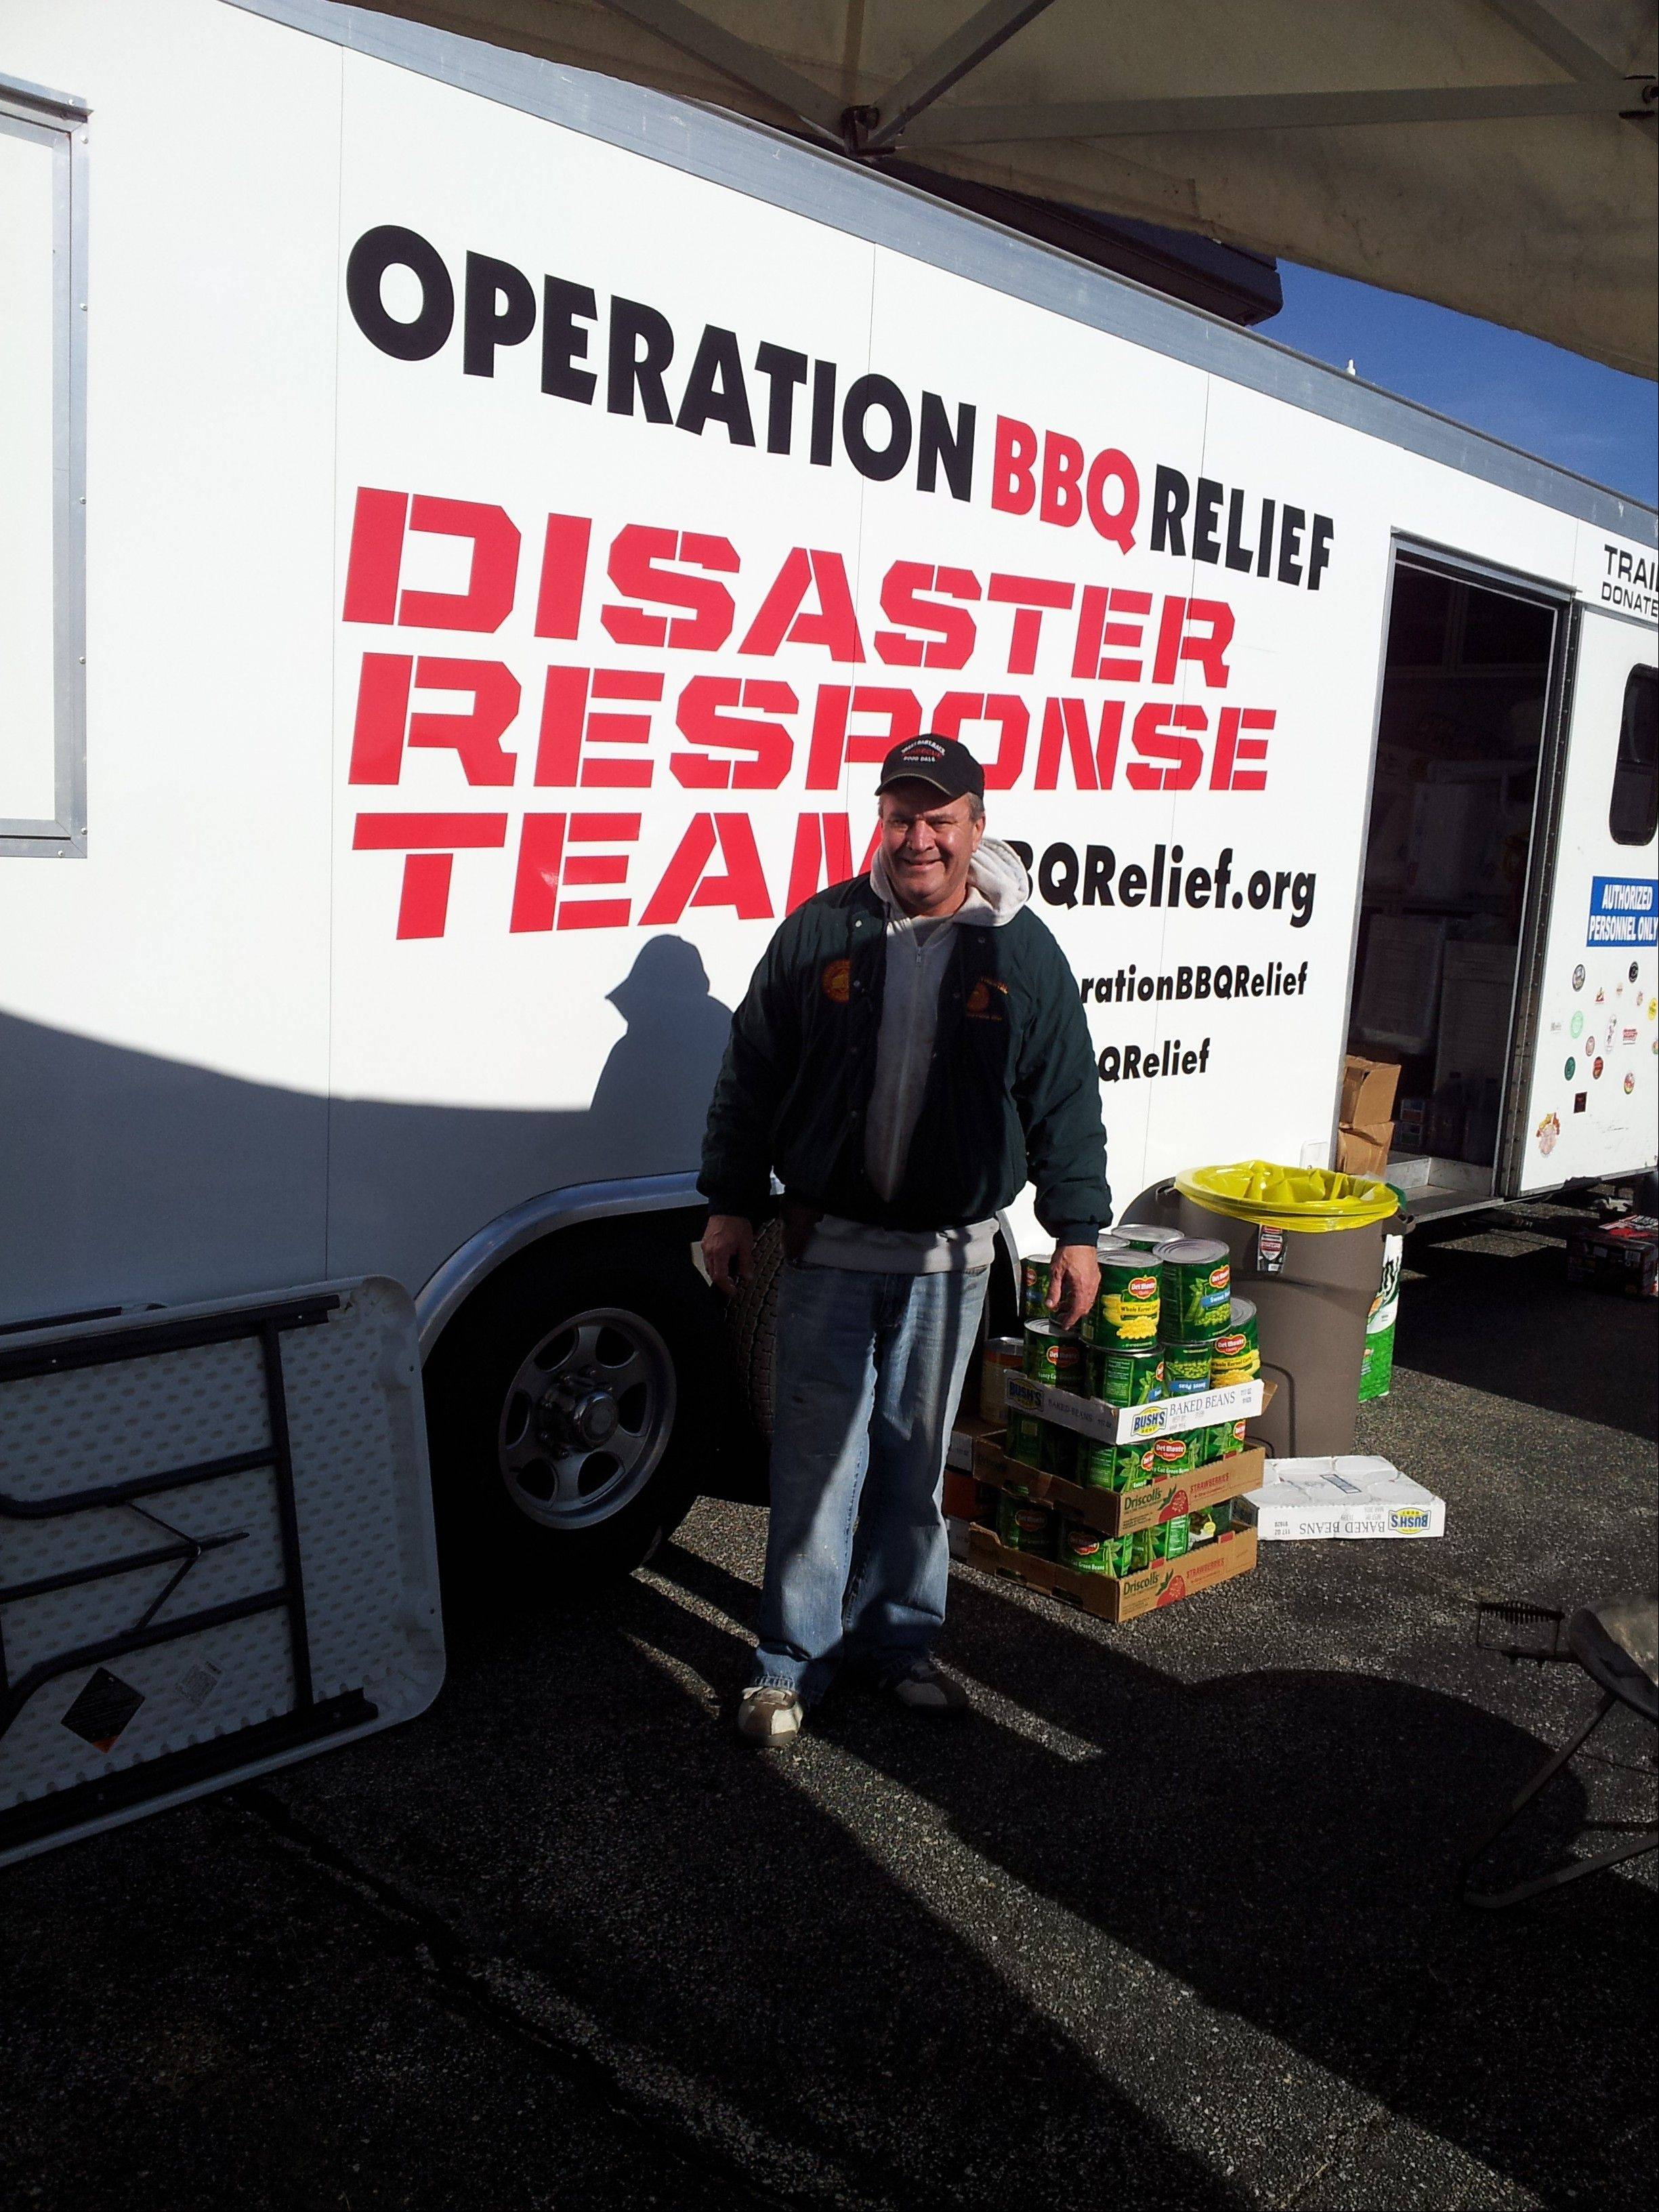 Ron Nunes of Elk Grove Village works with Operation BBQ Relief in downstate Washington after a powerful tornado ravaged the town.